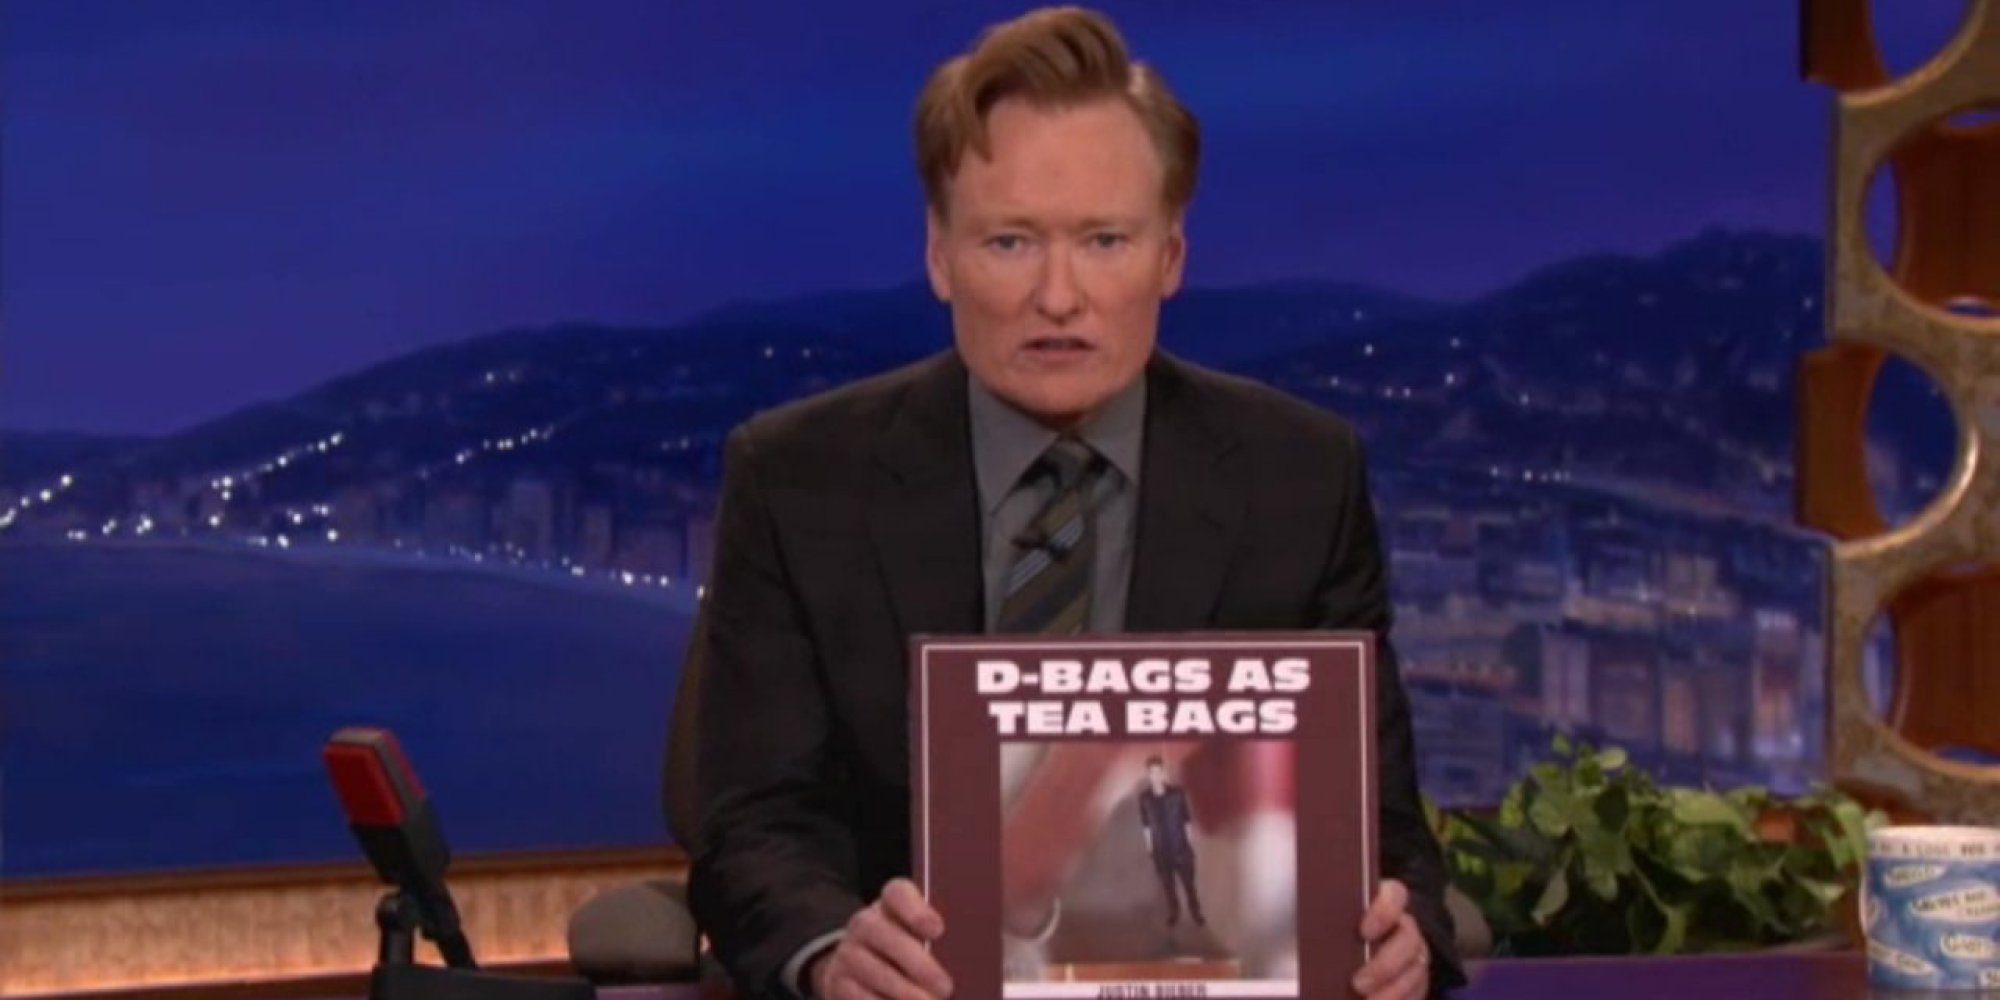 conan finds the funniest coffee table books that didn't sell